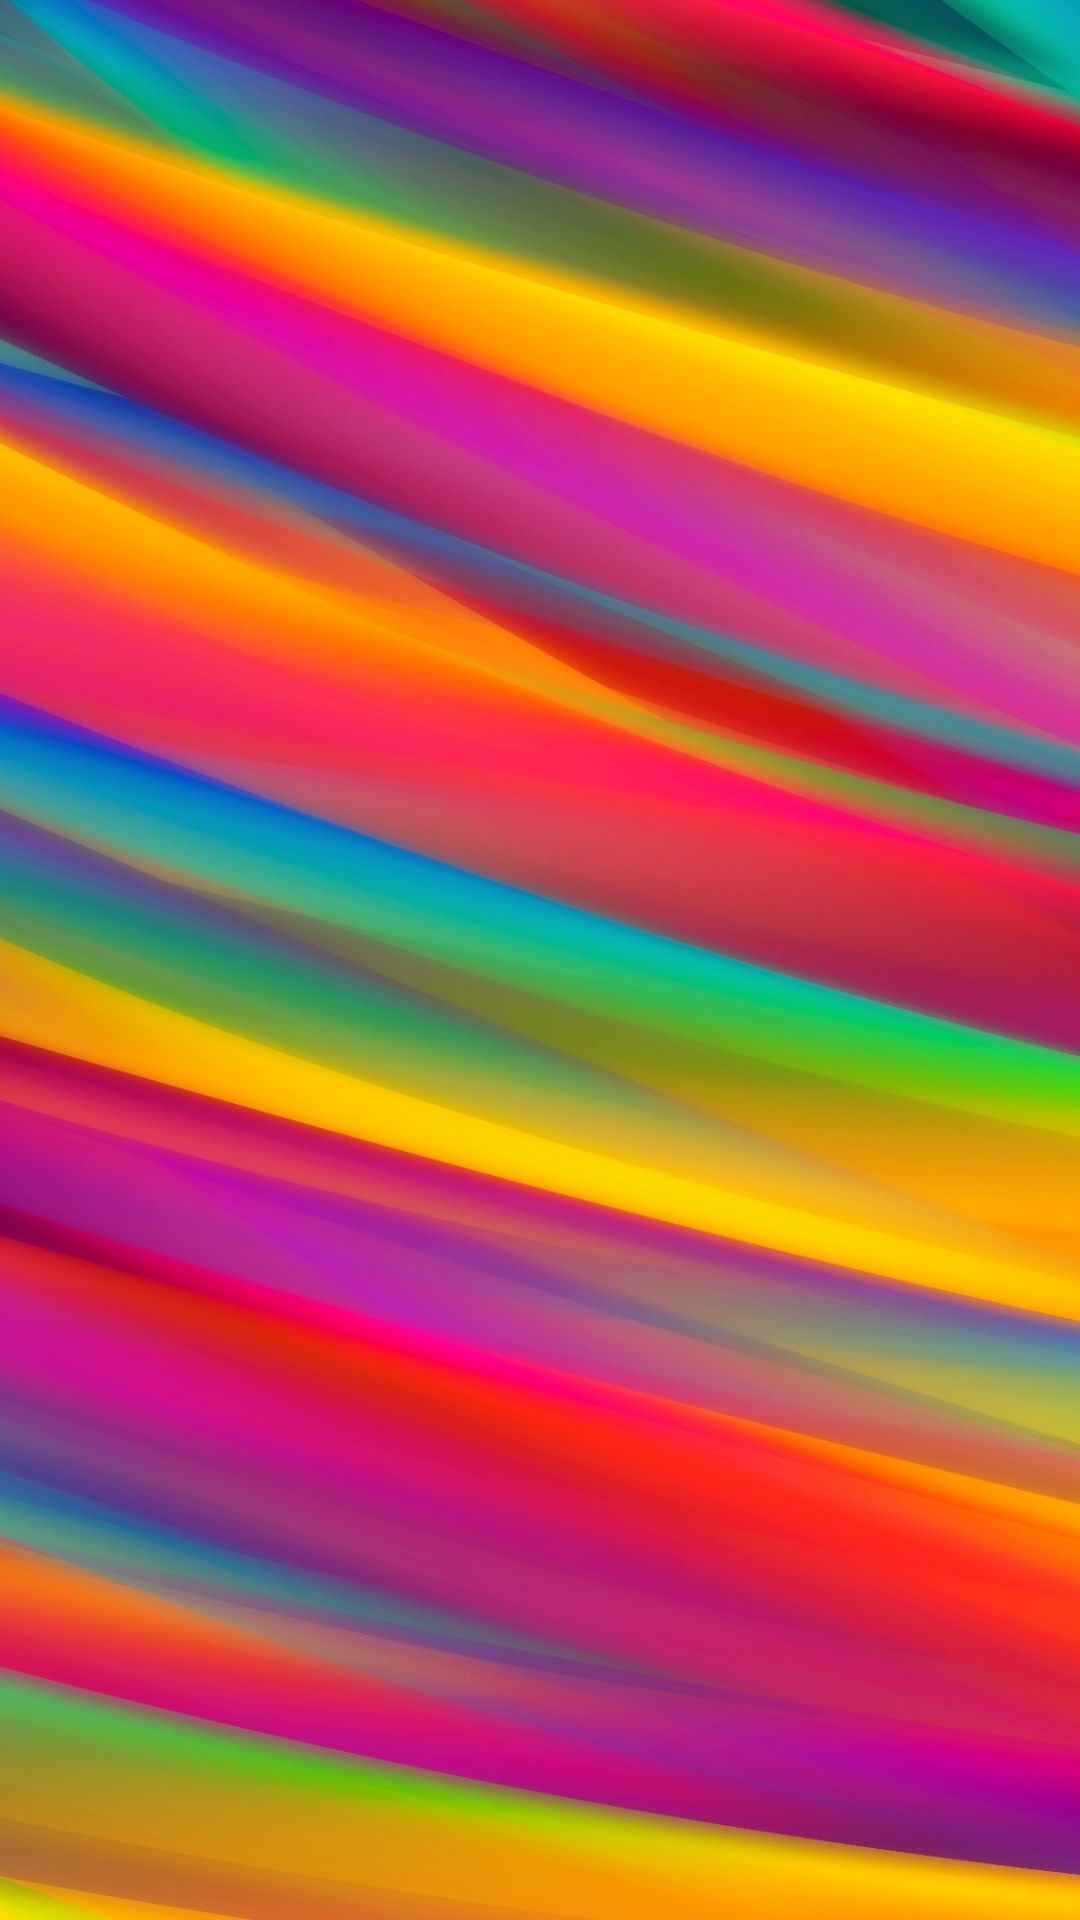 Shining Curves Abstract Colorful 1080x1920 Wallpaper Rainbow Colors Art Abstract Iphone Wallpaper Rainbow Wallpaper